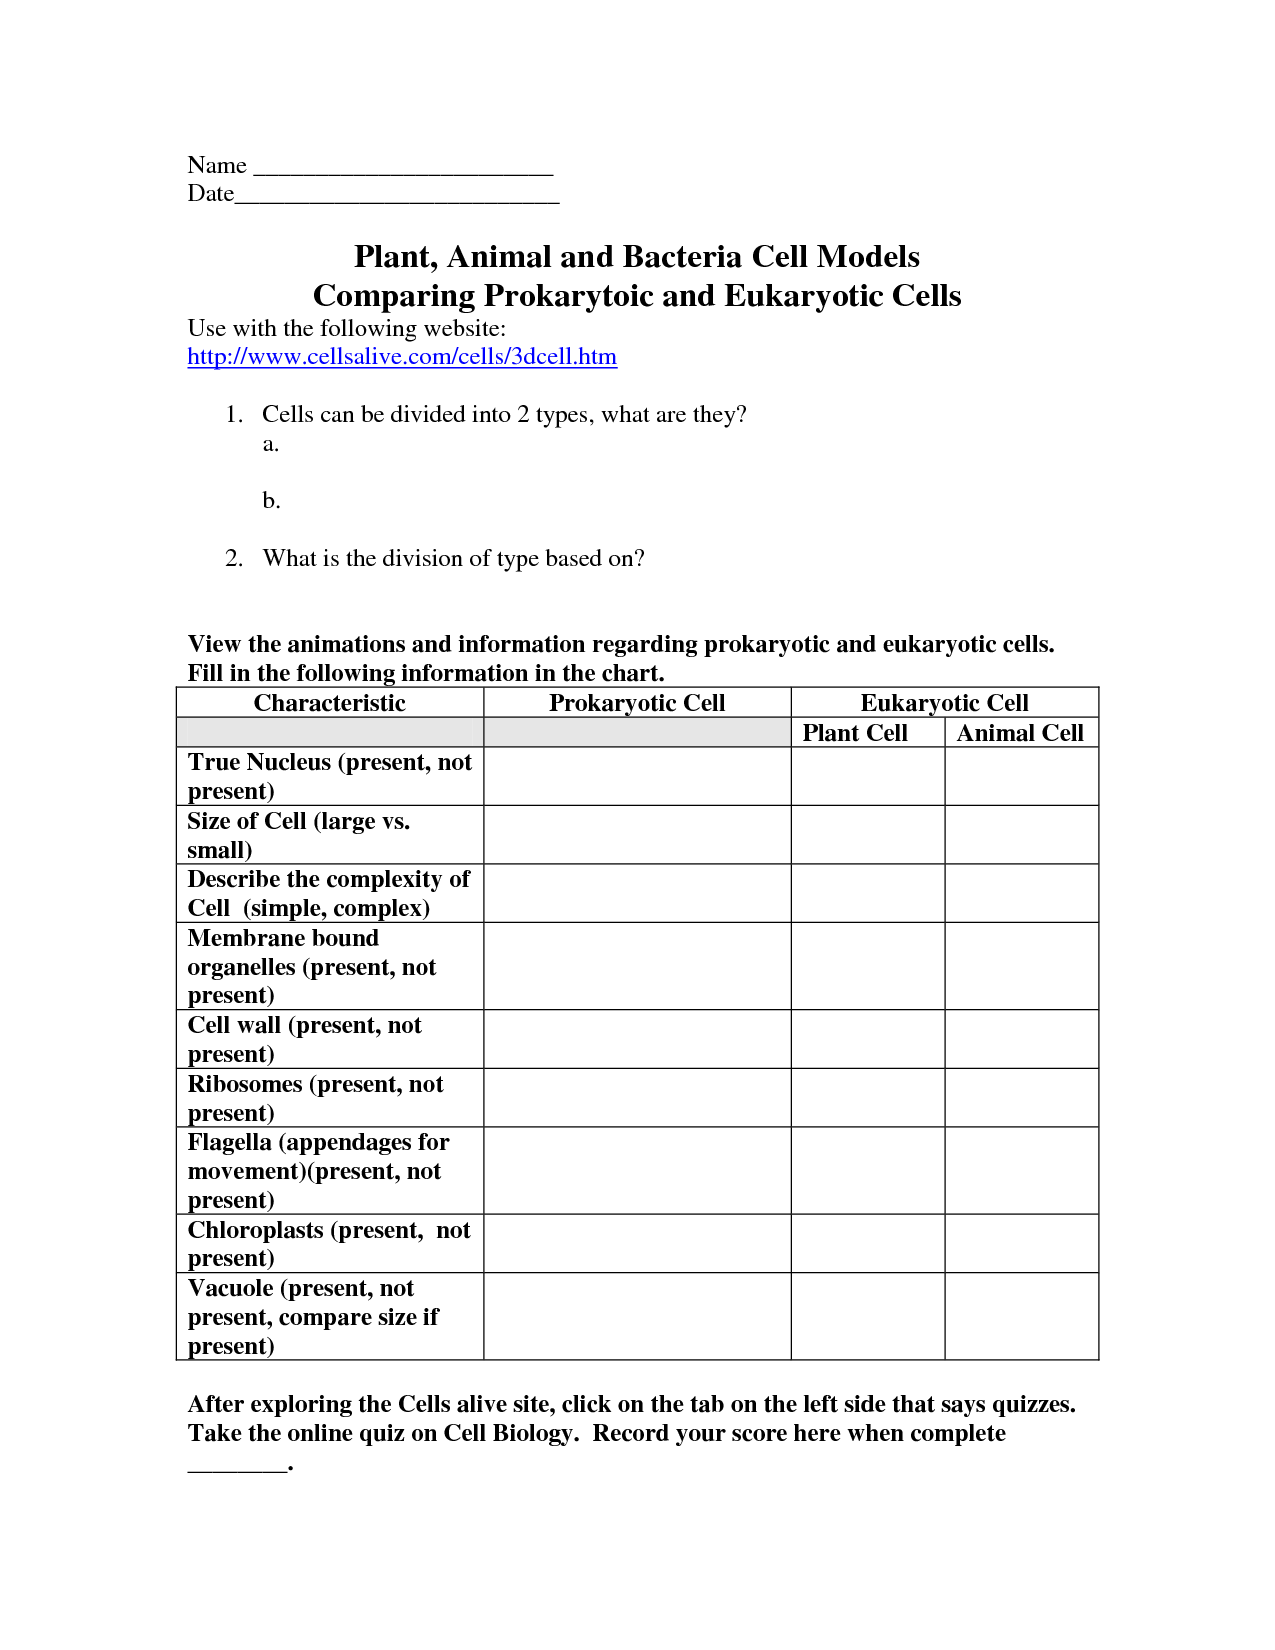 cells worksheets | ... Anima and Bacterial Cell comparing ...